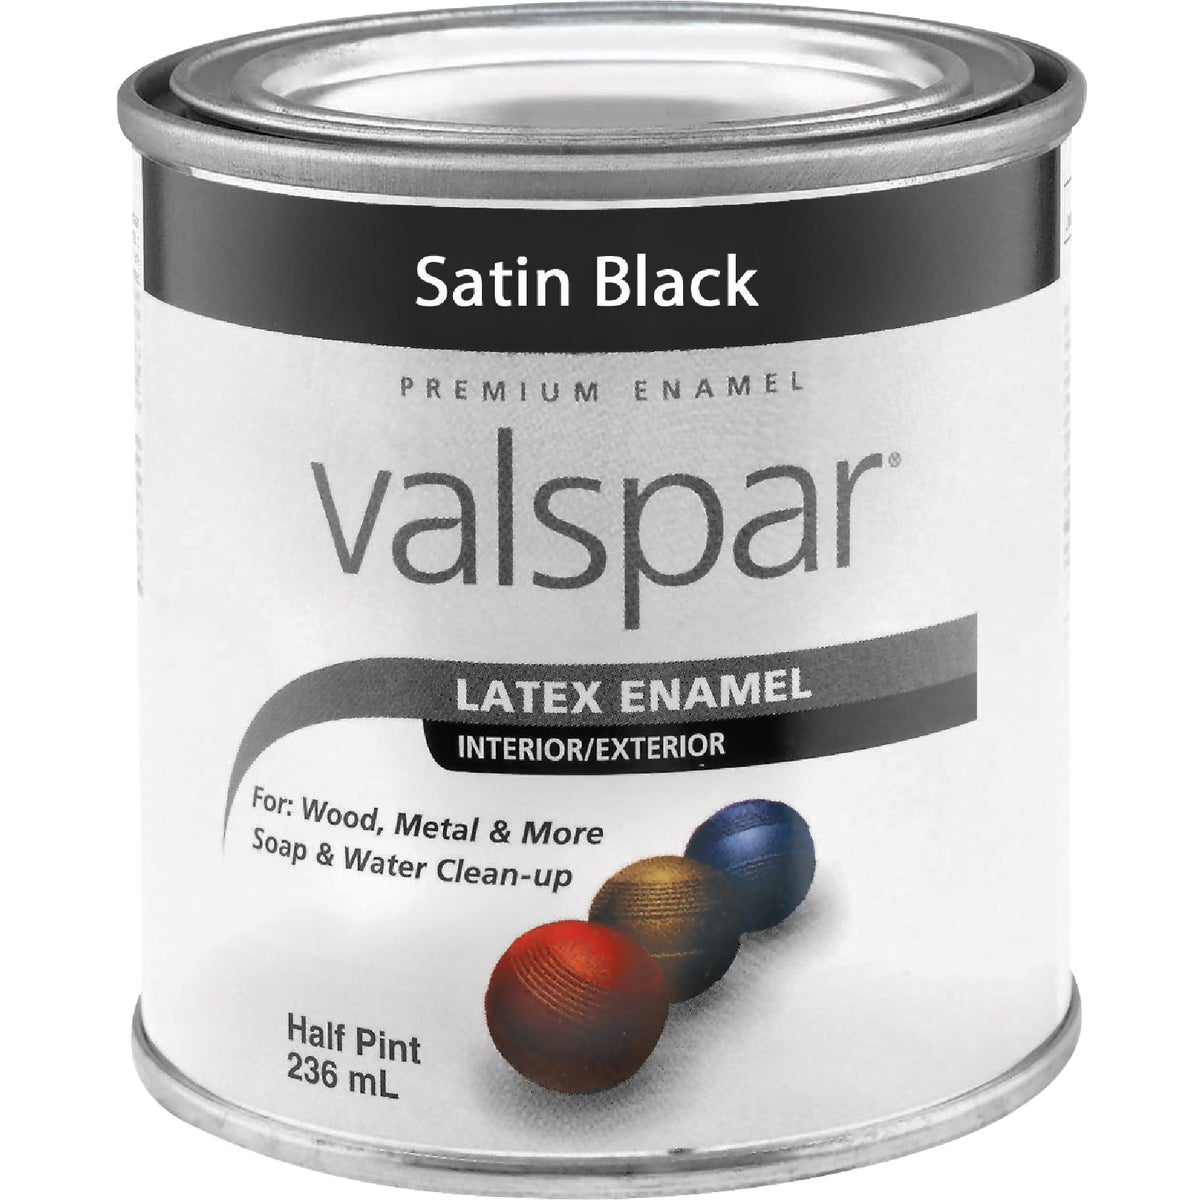 LTX SATIN BLACK ENAMEL - 410.0065049.005 by Valspar Corp